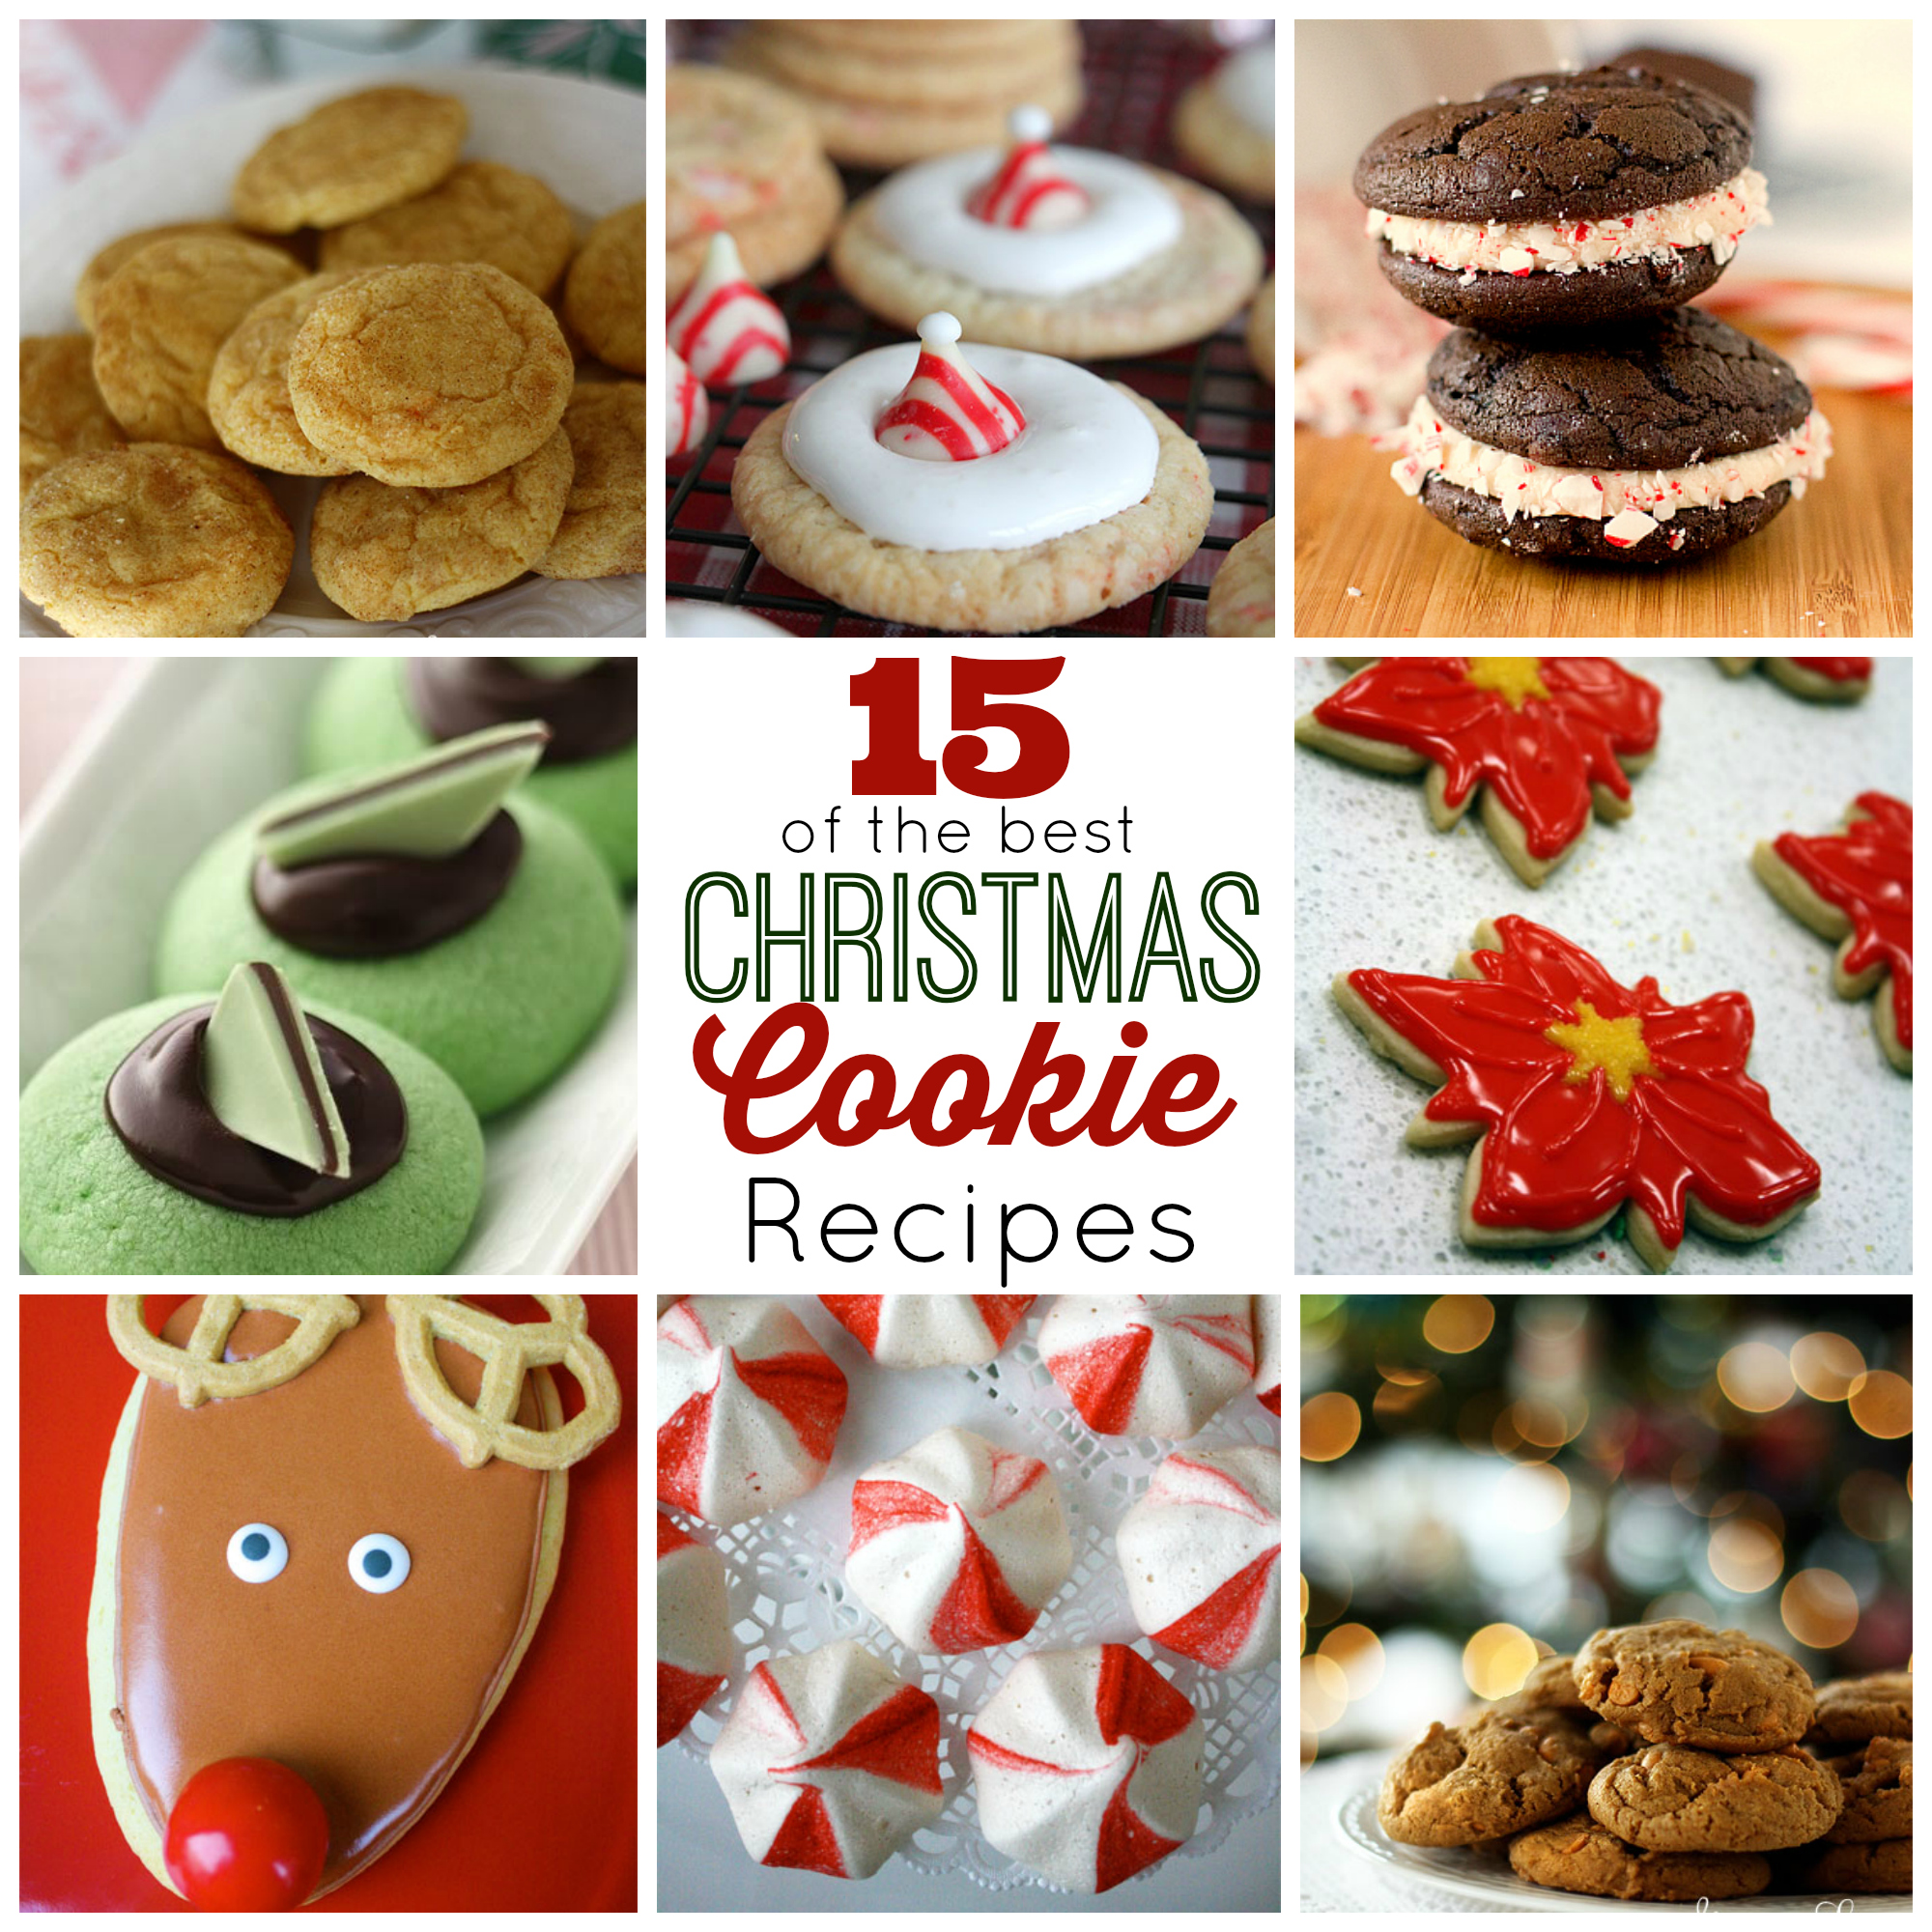 Cookies Recipes For Christmas: 15 Of The Best Christmas Cookies